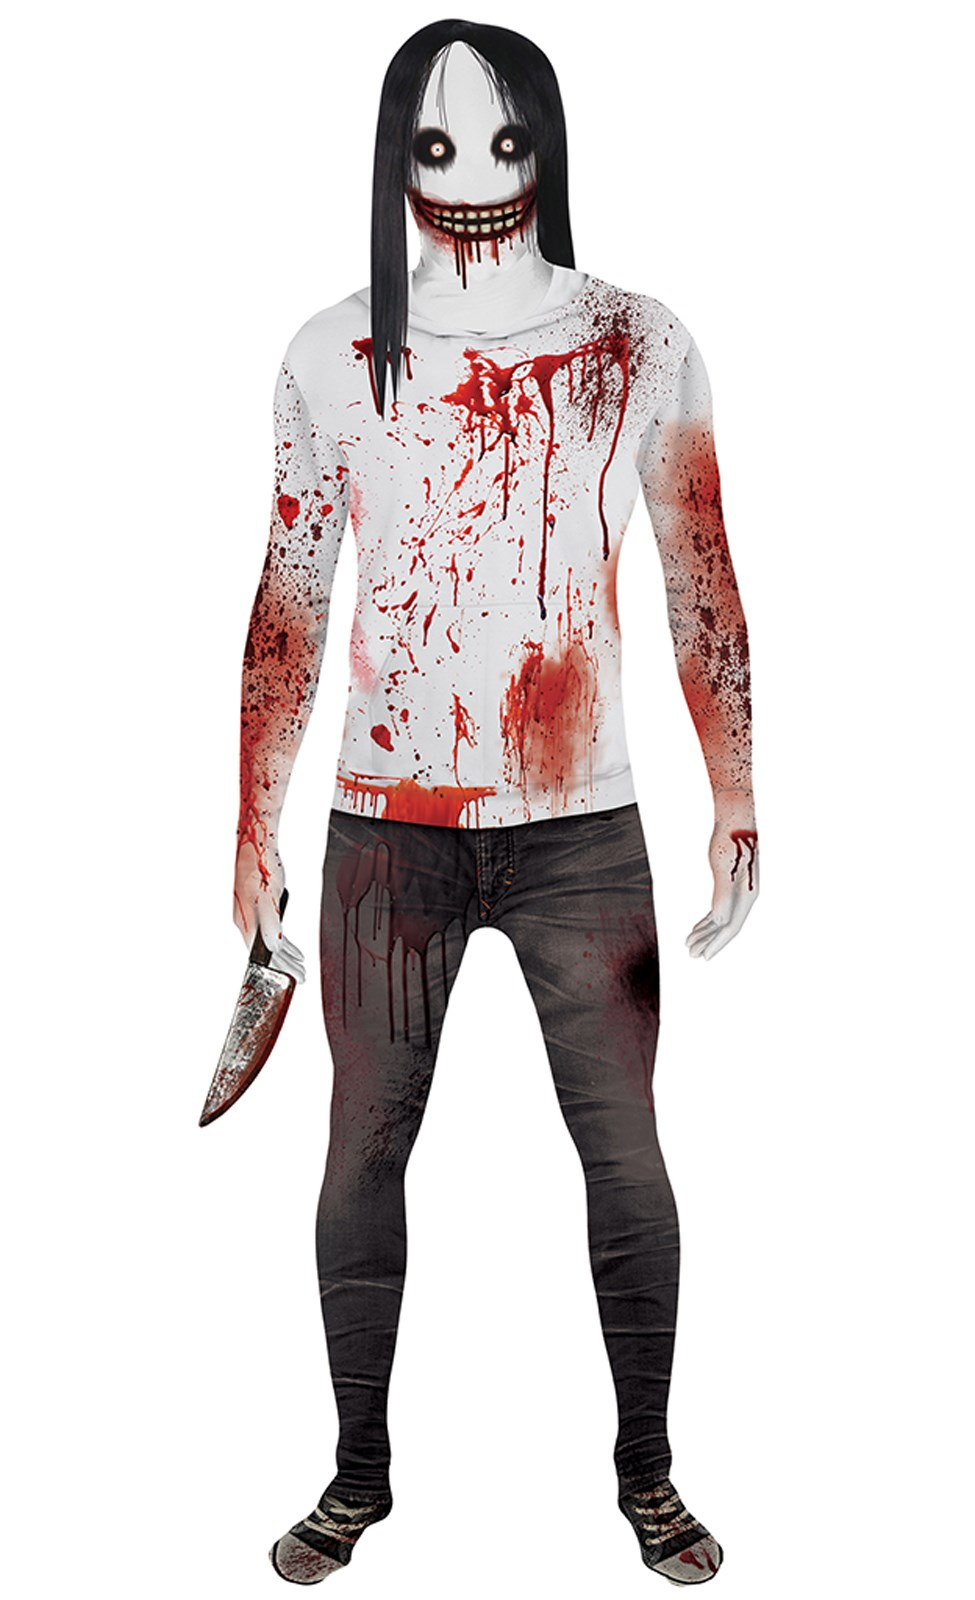 jeff the killer adult morphsuit costume - Morphsuits Halloween Costumes